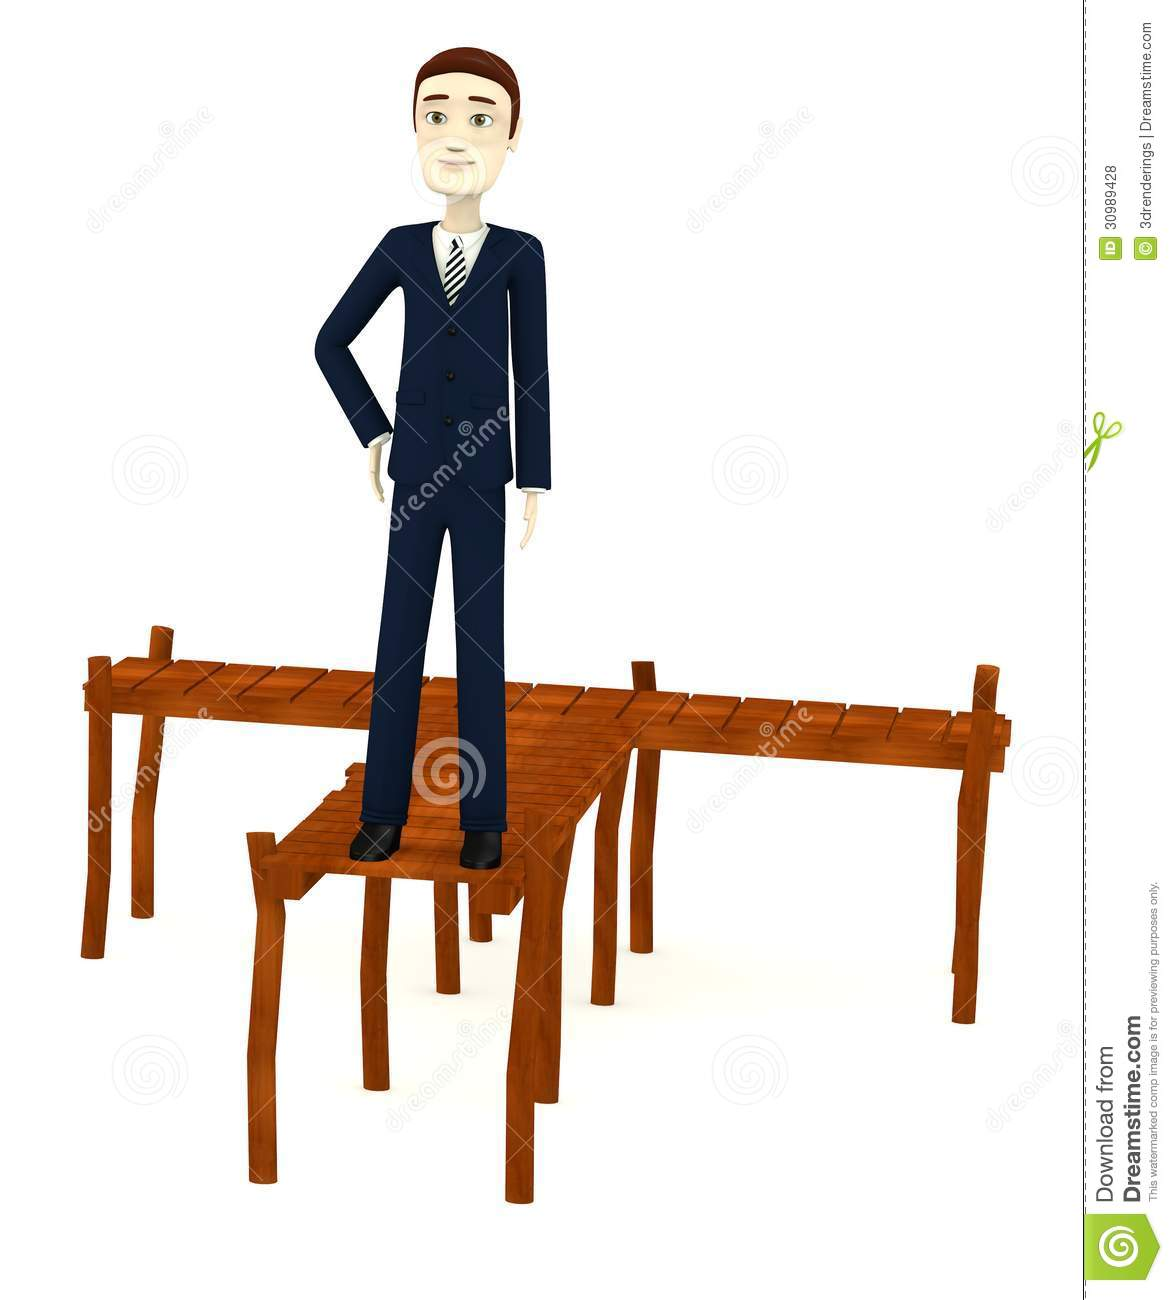 Cartoon Businessman With Landing Stage Royalty Free Stock Photos.